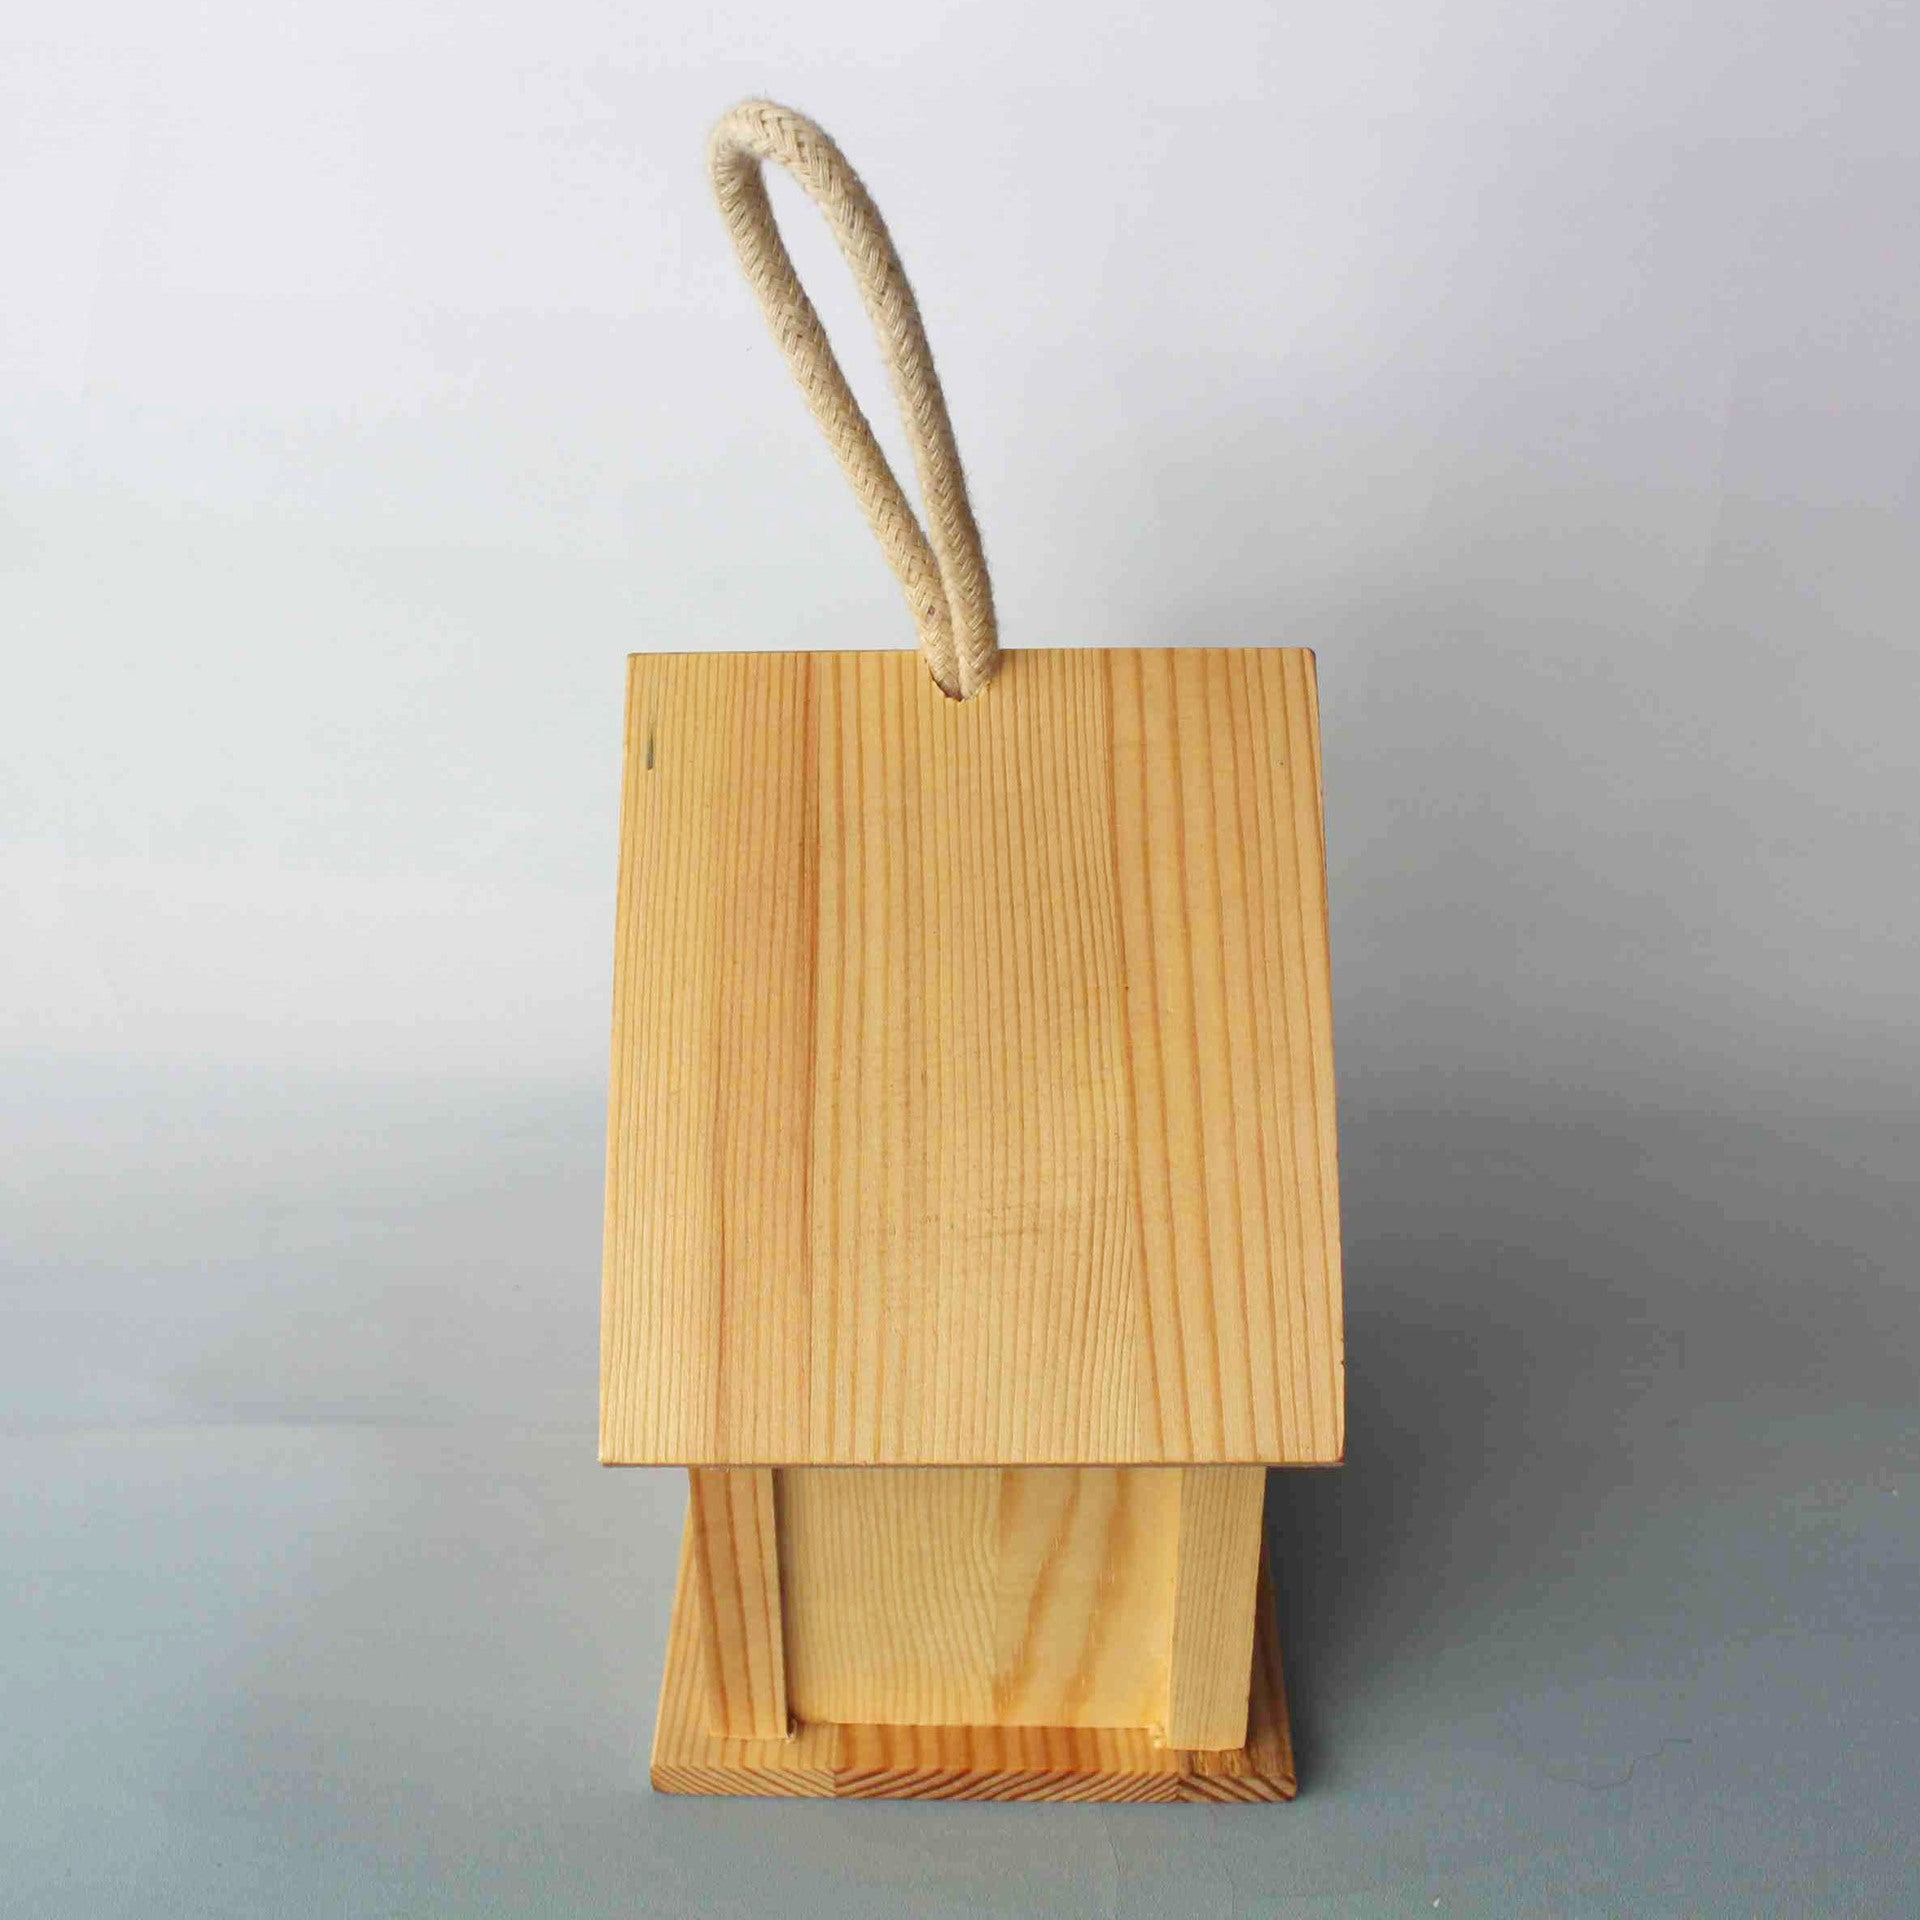 Wooden birdhouse pine house shaped garden square decoration factory wholesale wooden bird nest love bird house